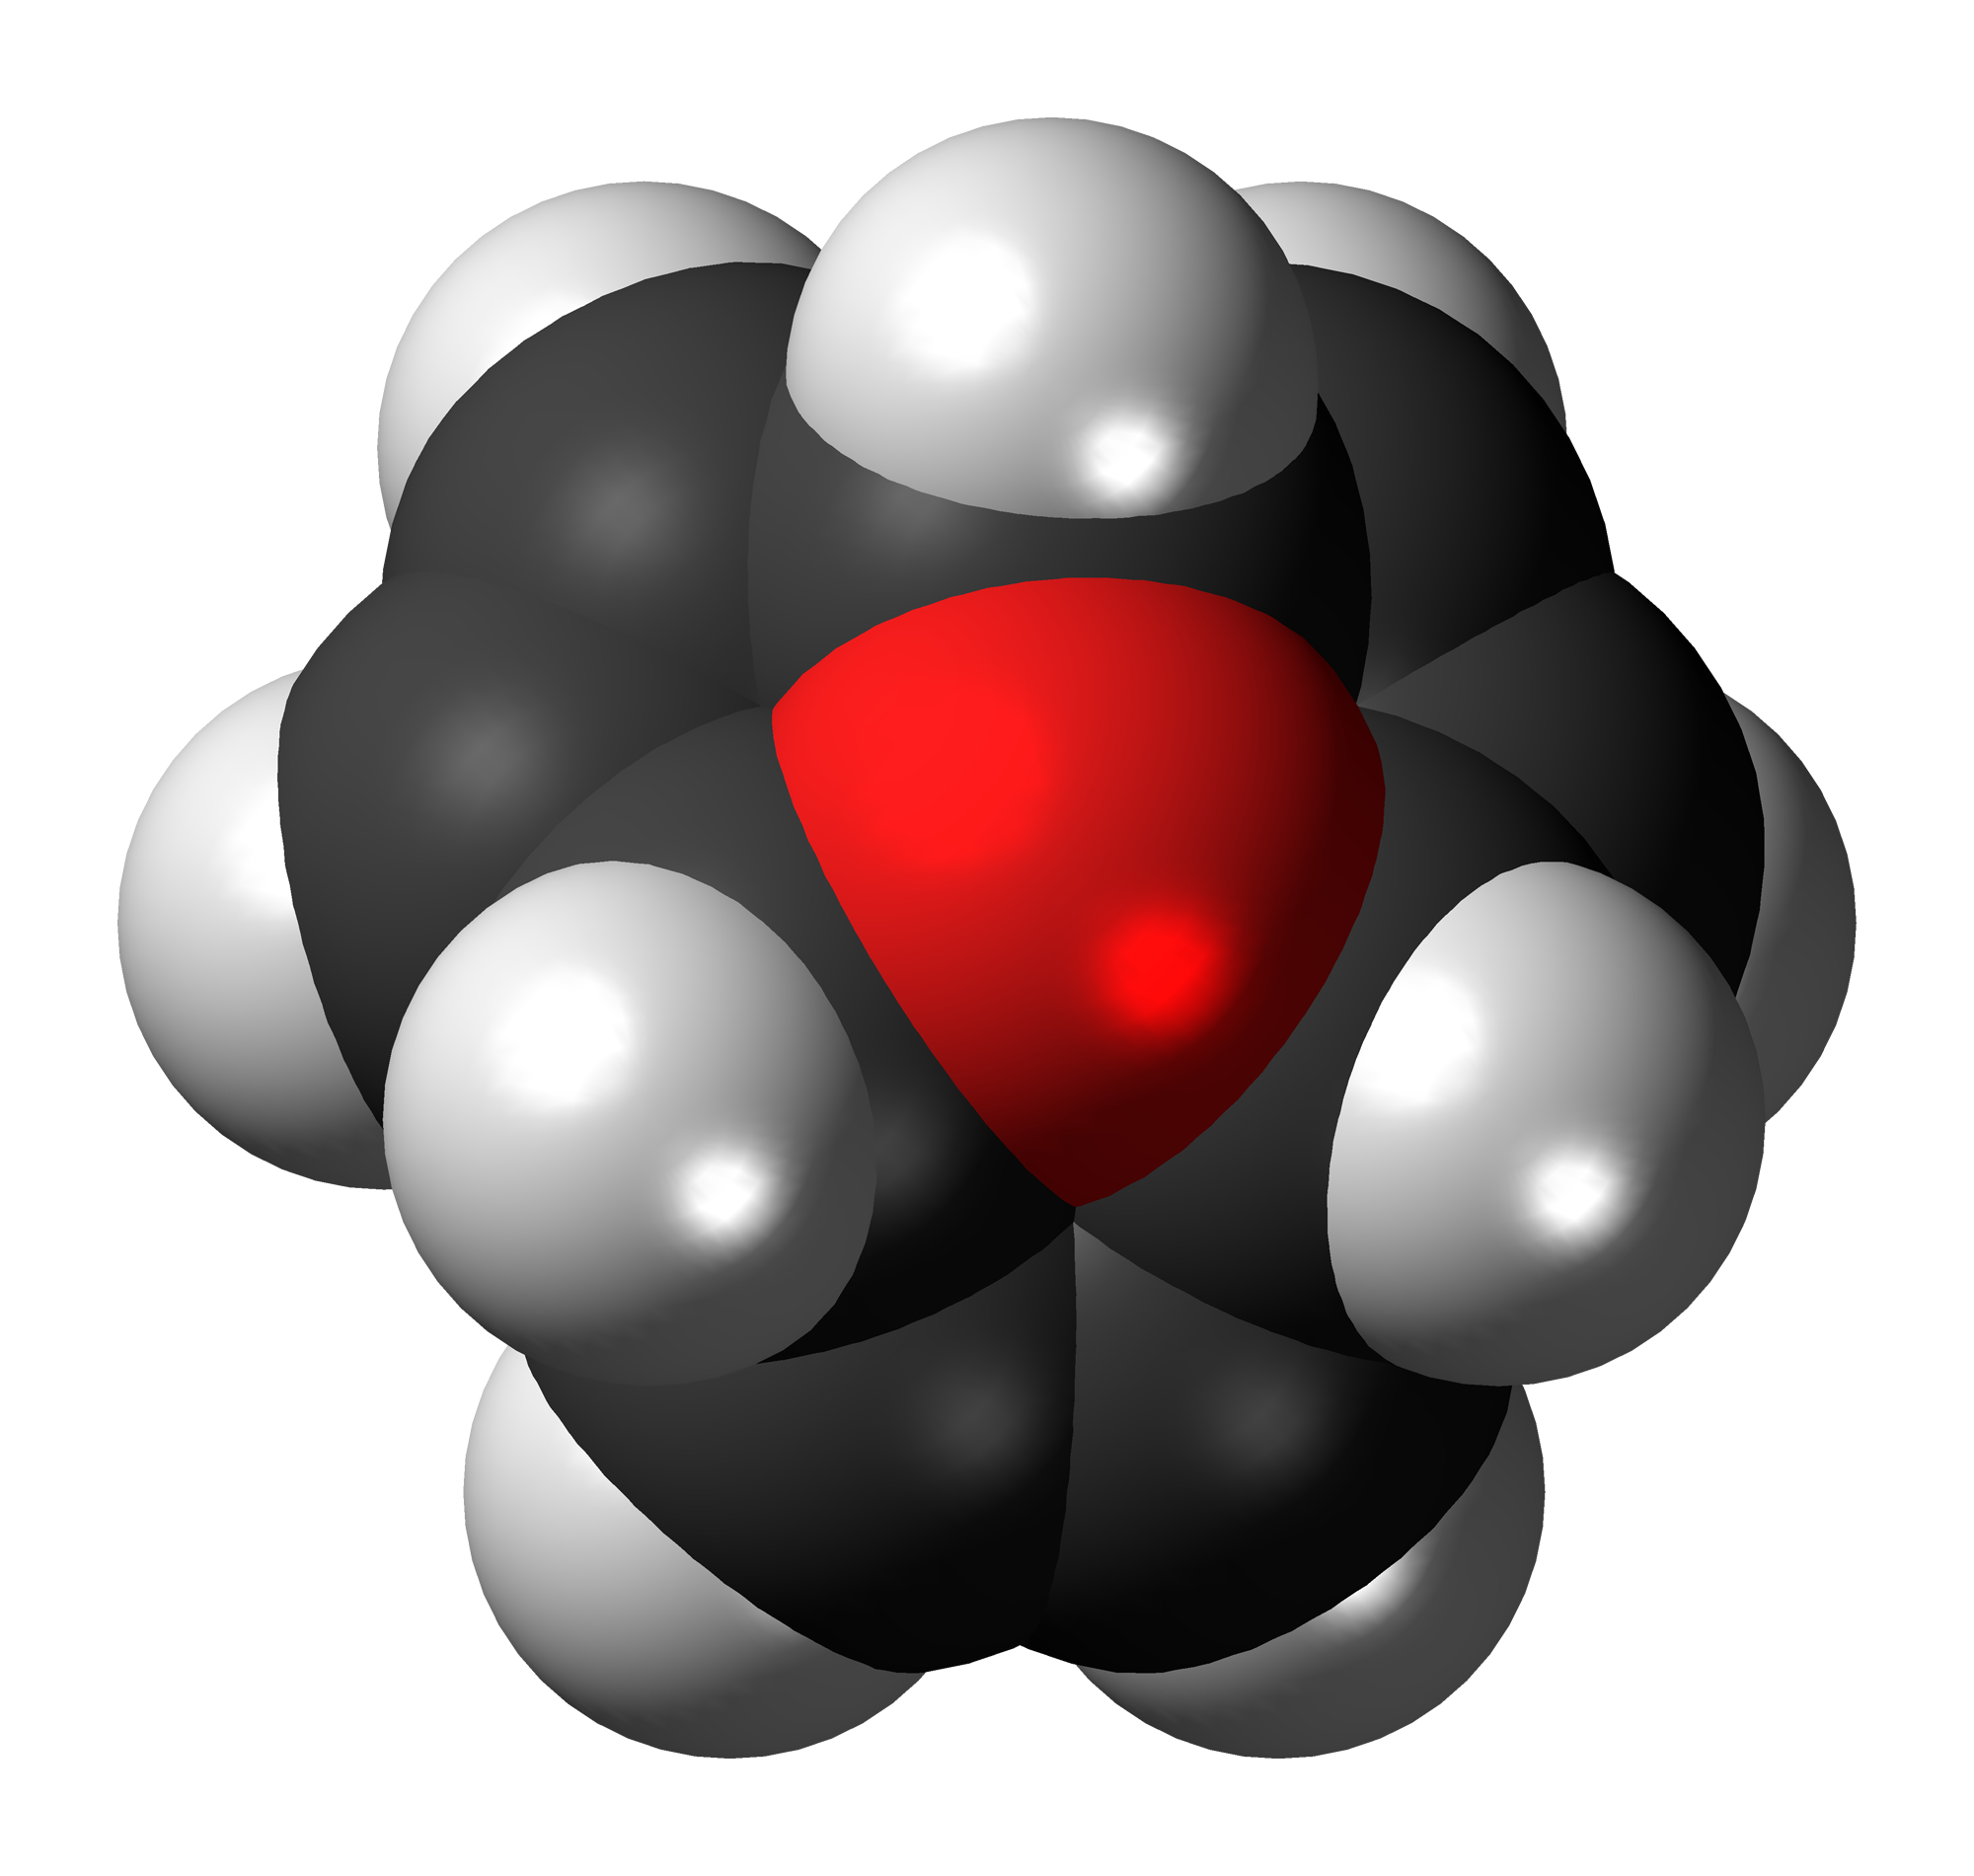 File:Oxatriquinacene cation 3D spacefill.png - Wikimedia Commons